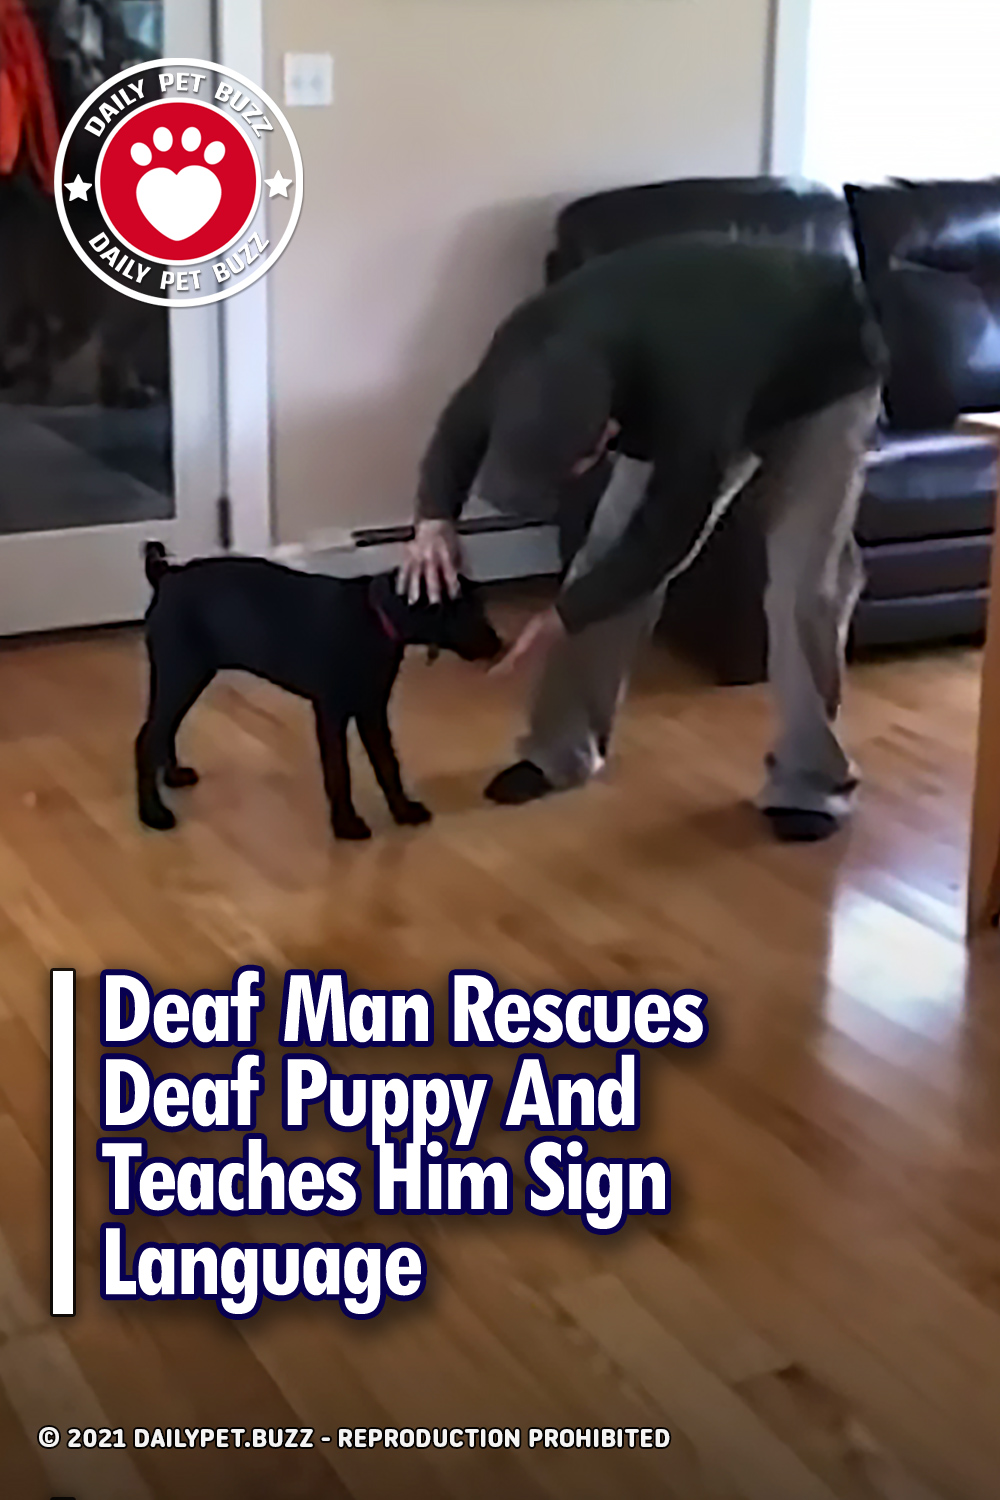 Deaf Man Rescues Deaf Puppy And Teaches Him Sign Language